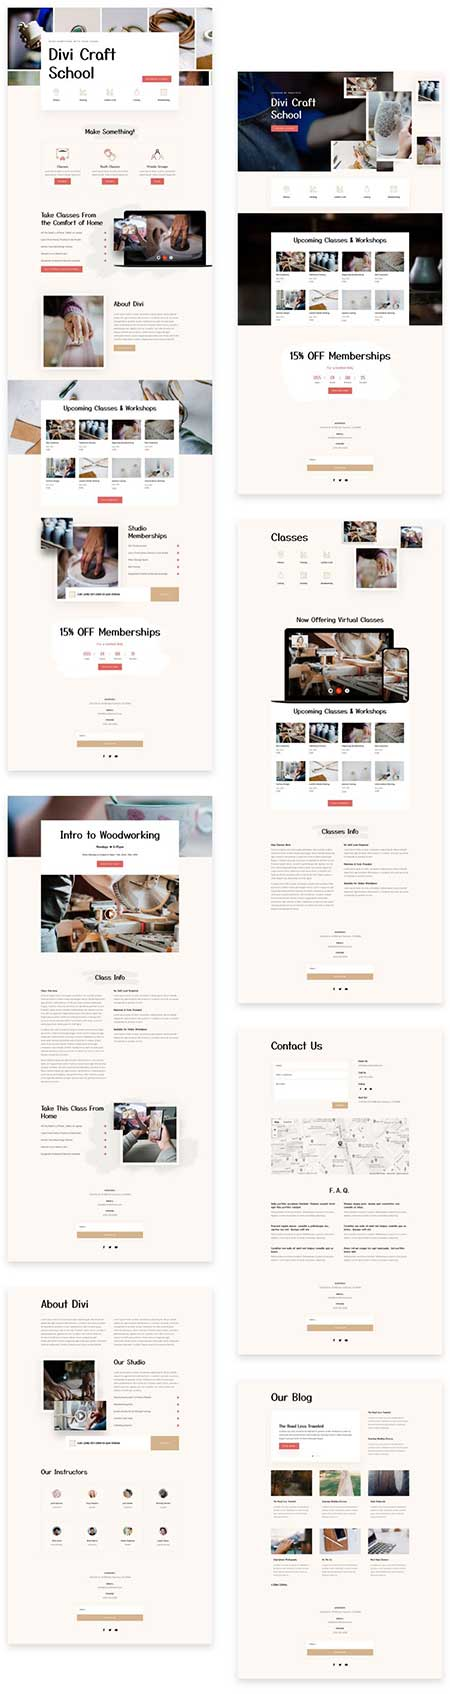 Use this Divi website template pack to create your craft classes website. This Divi layout pack comes with 7